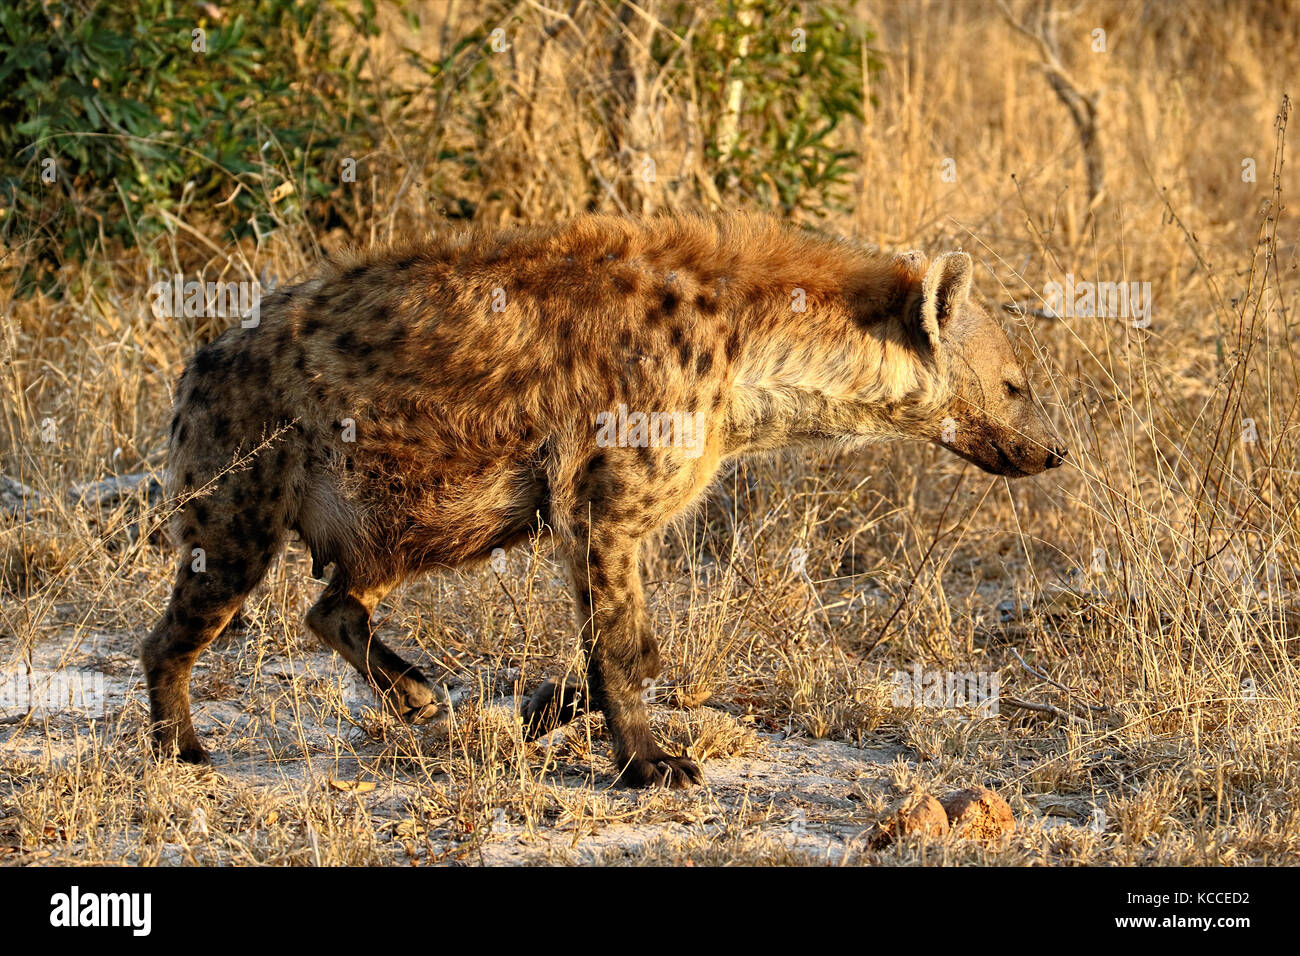 Pregnant Hyena in the Kruger National Park in South Africa - Stock Image